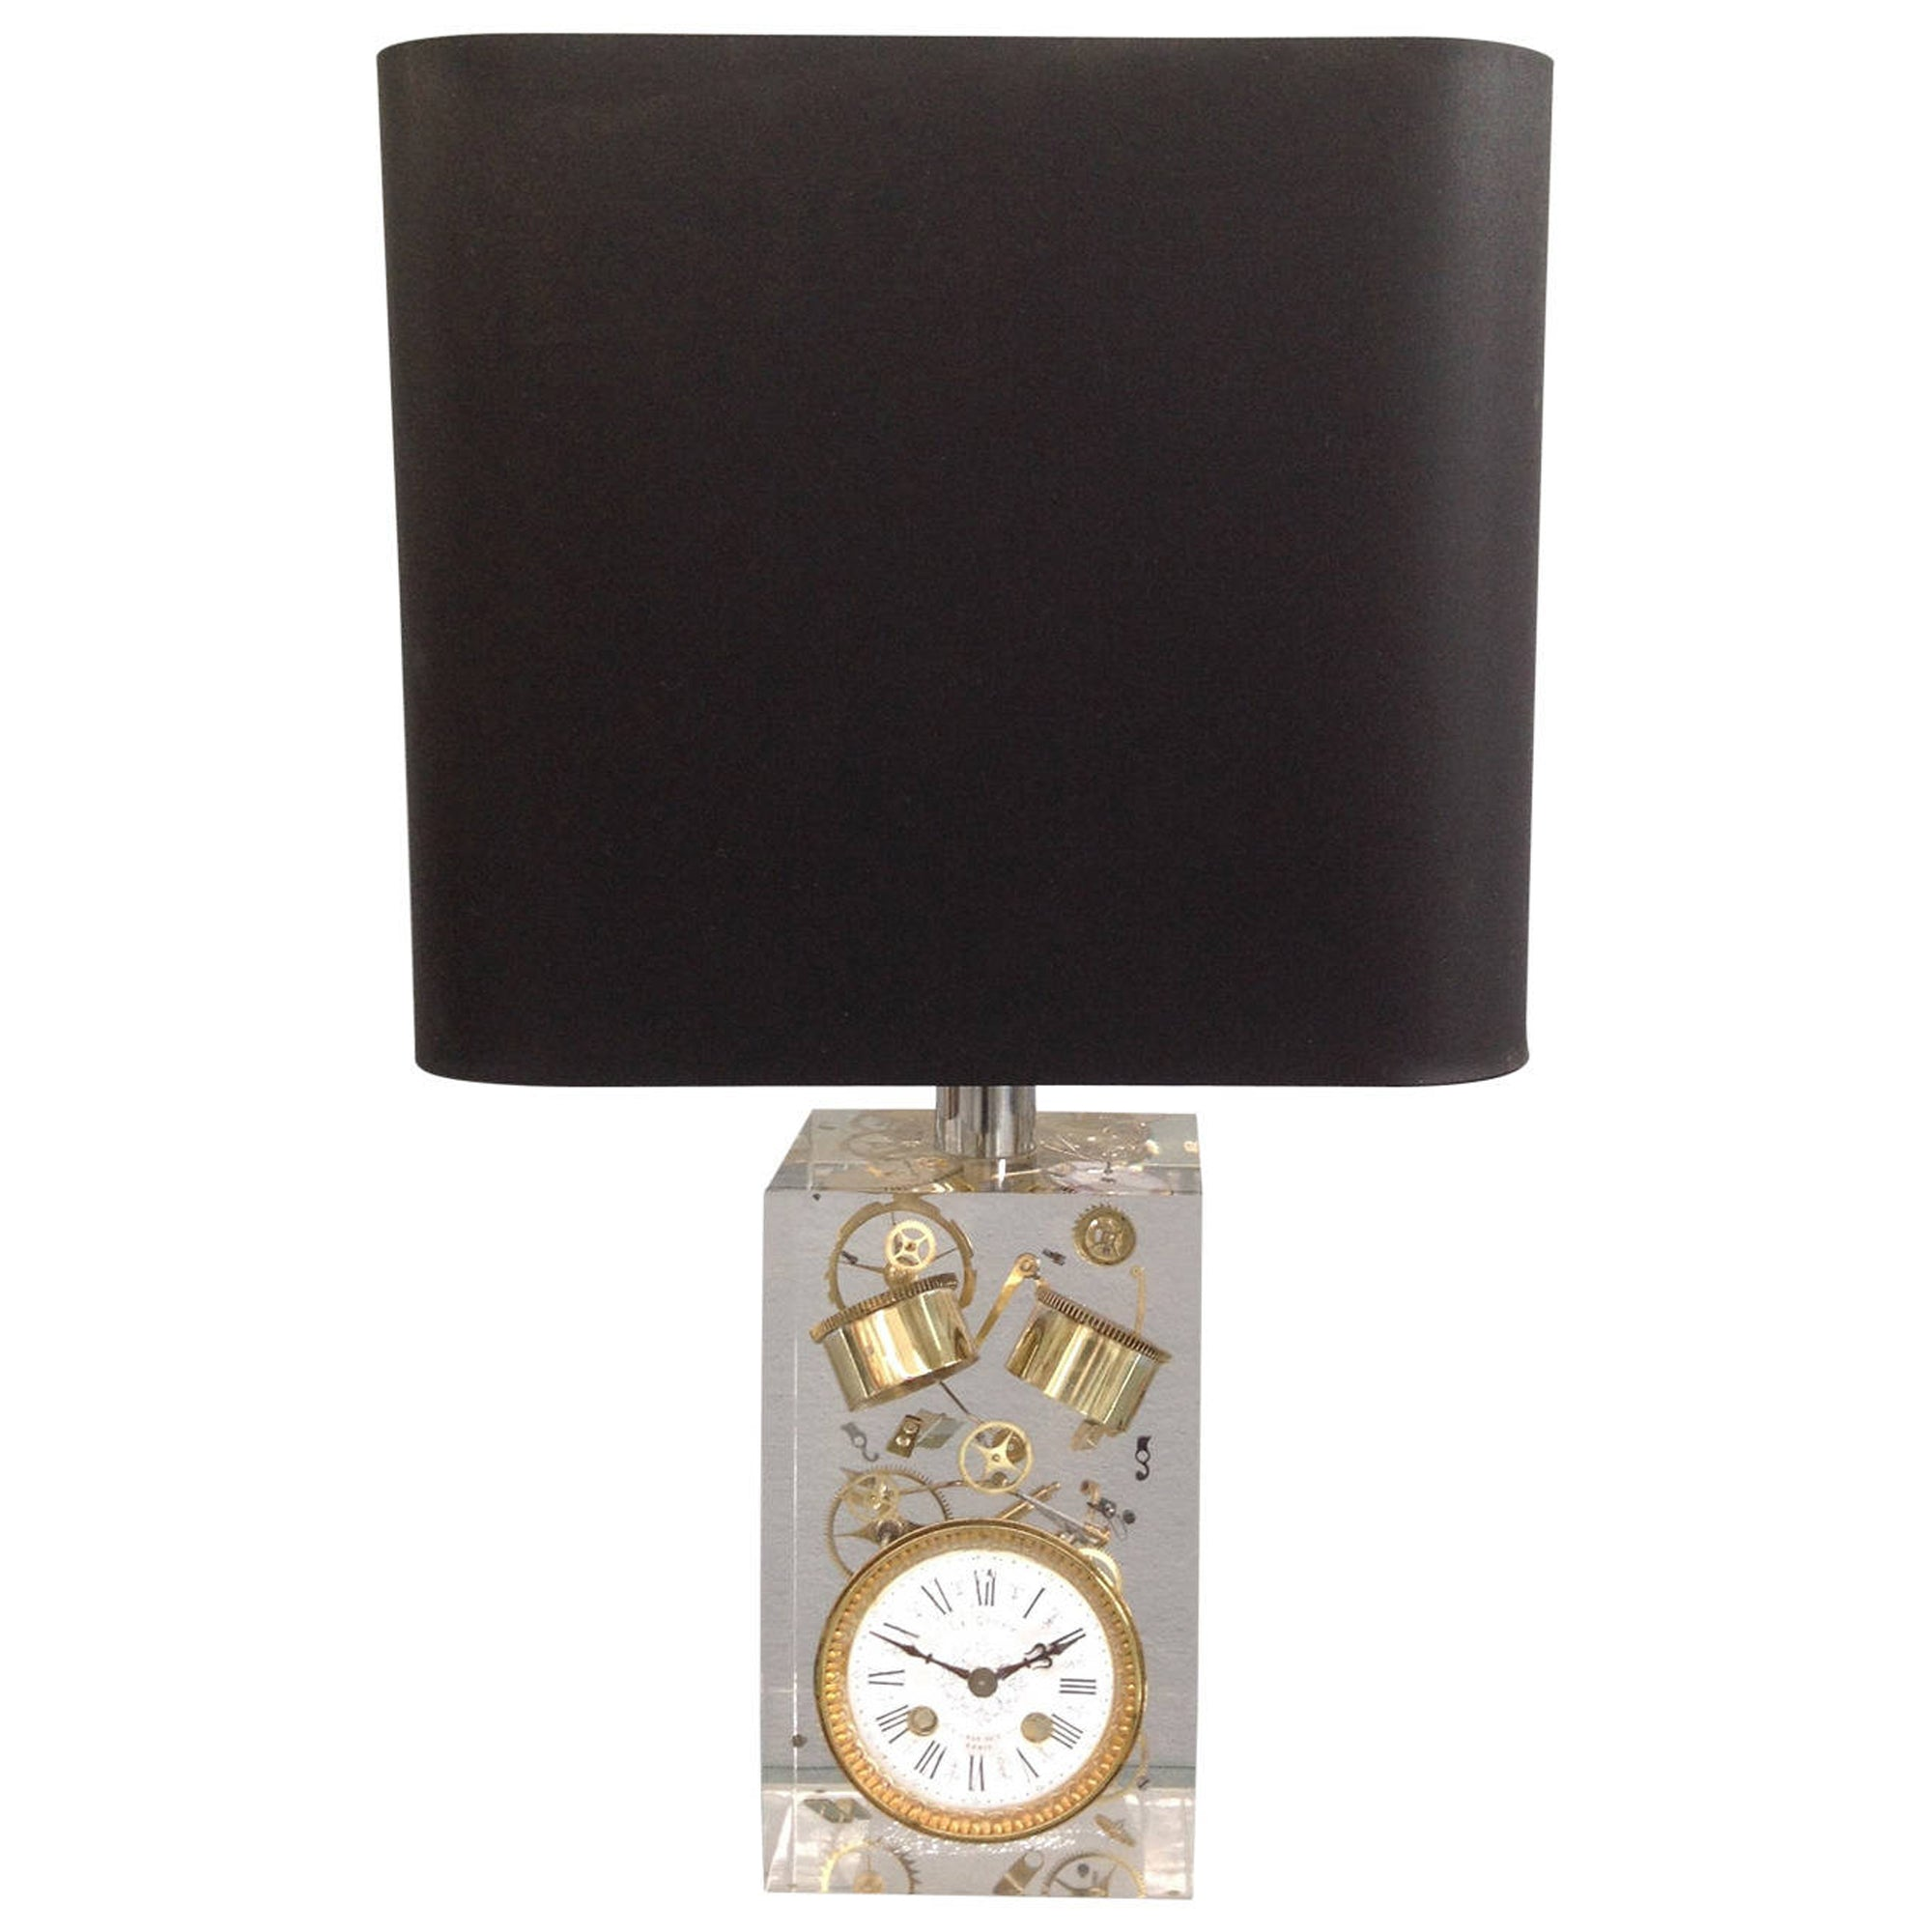 Pierre Giraudon Custom Table Lamp